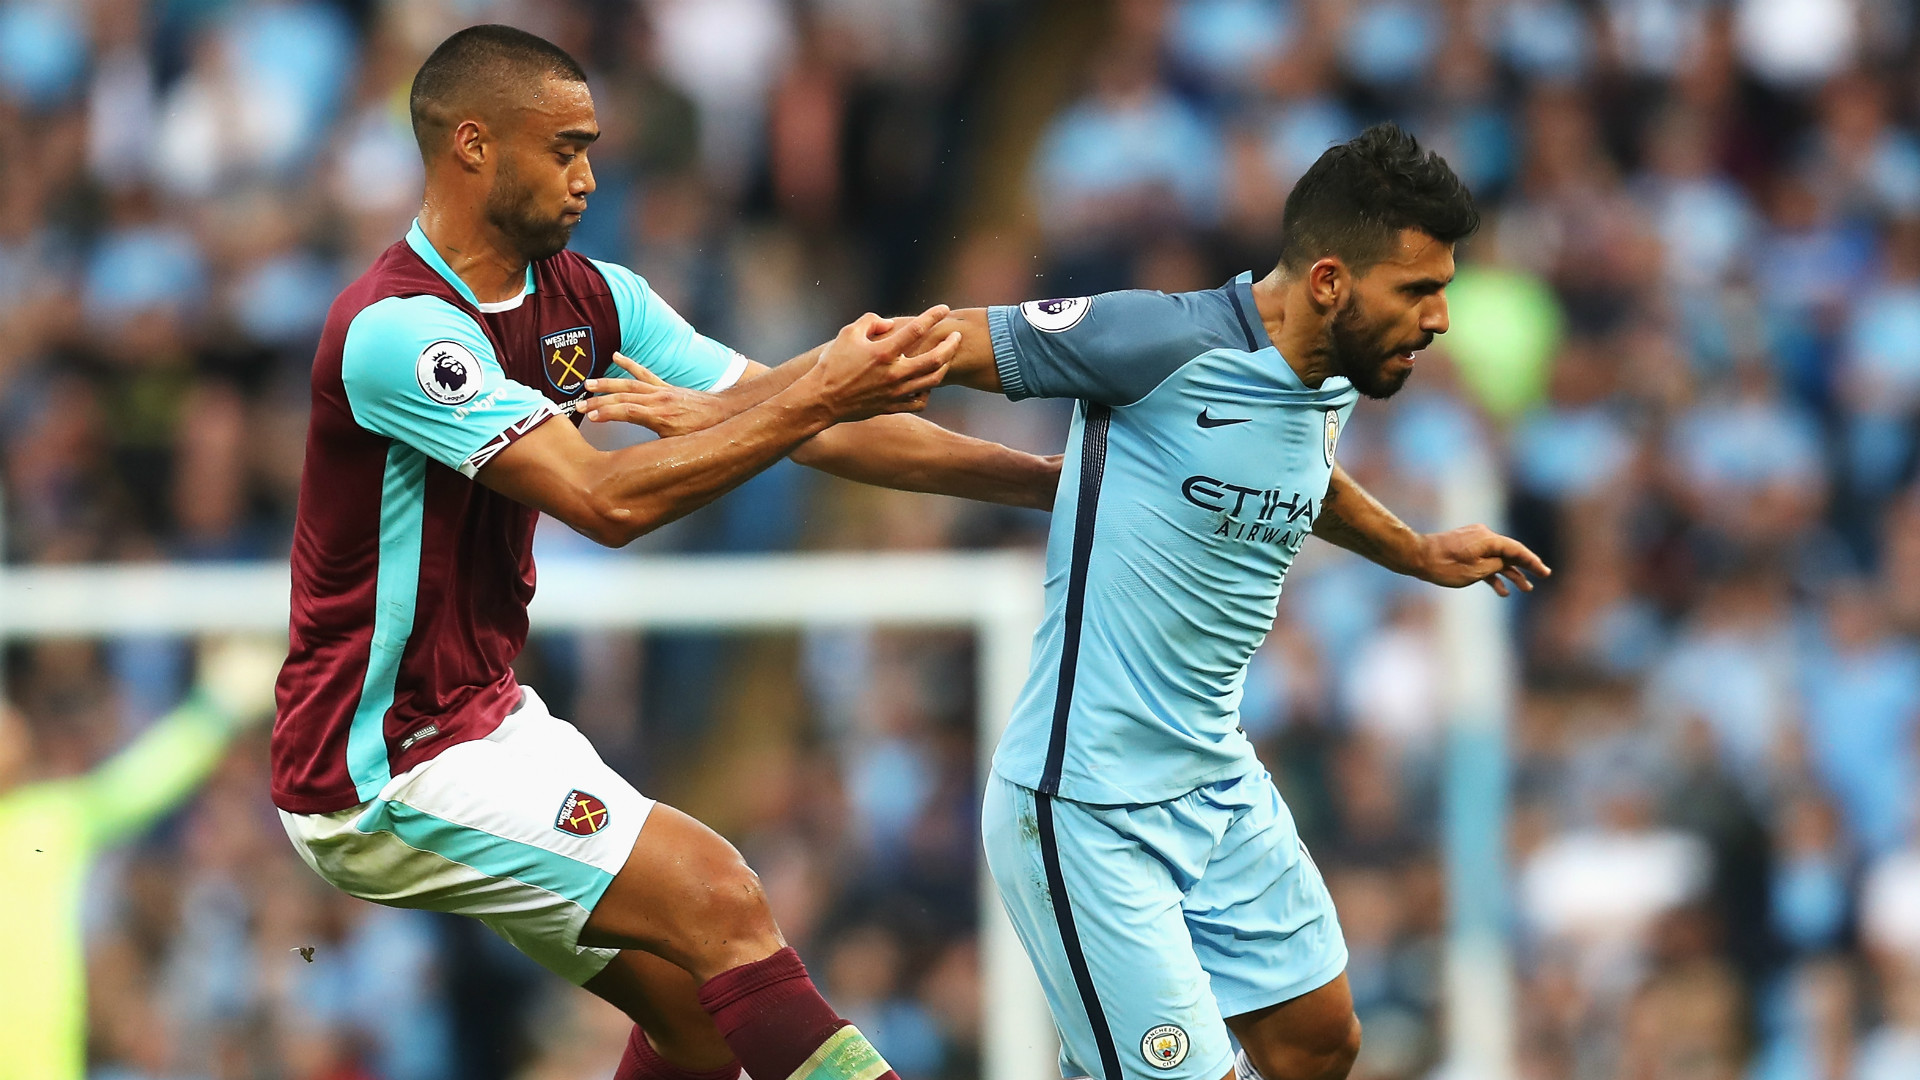 Apparently Andre Marriner 'missed' the controversial Aguero-Reid challenge when City played West Ham last August.